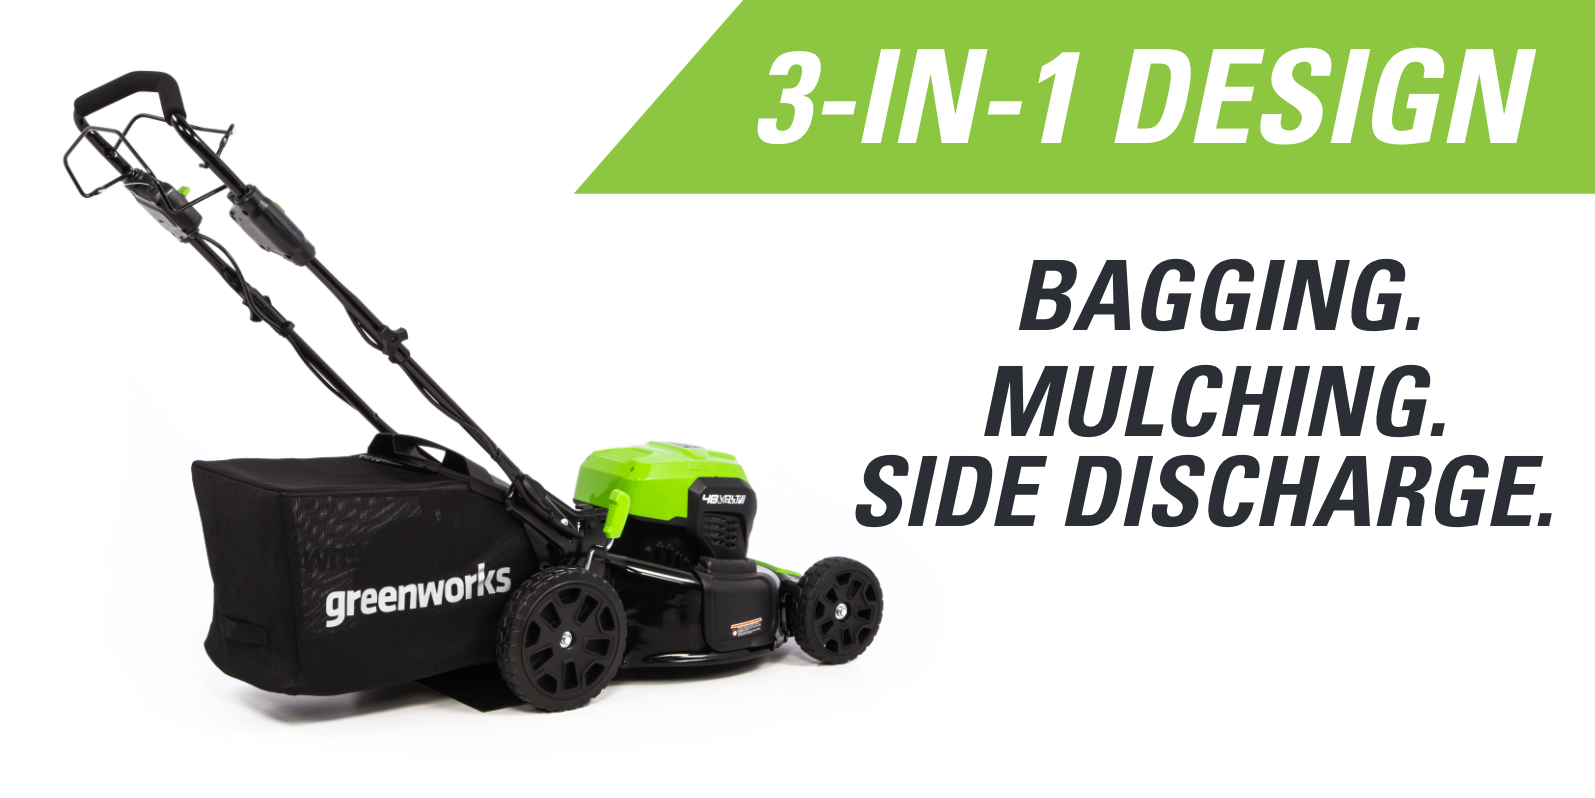 48SPM21 48V Self-Propelled 21-Inch Lawn Mower | Greenworks Commercial